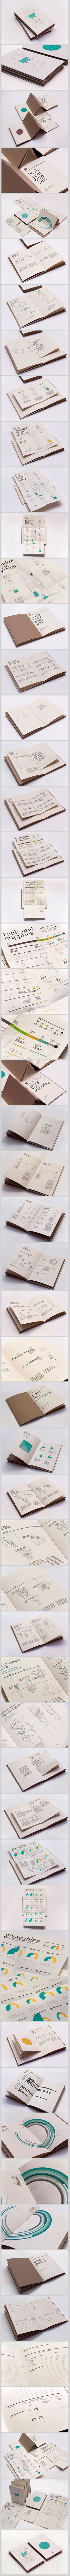 Window Farms: Information Design Book by Jiani Lu | #print #editorial